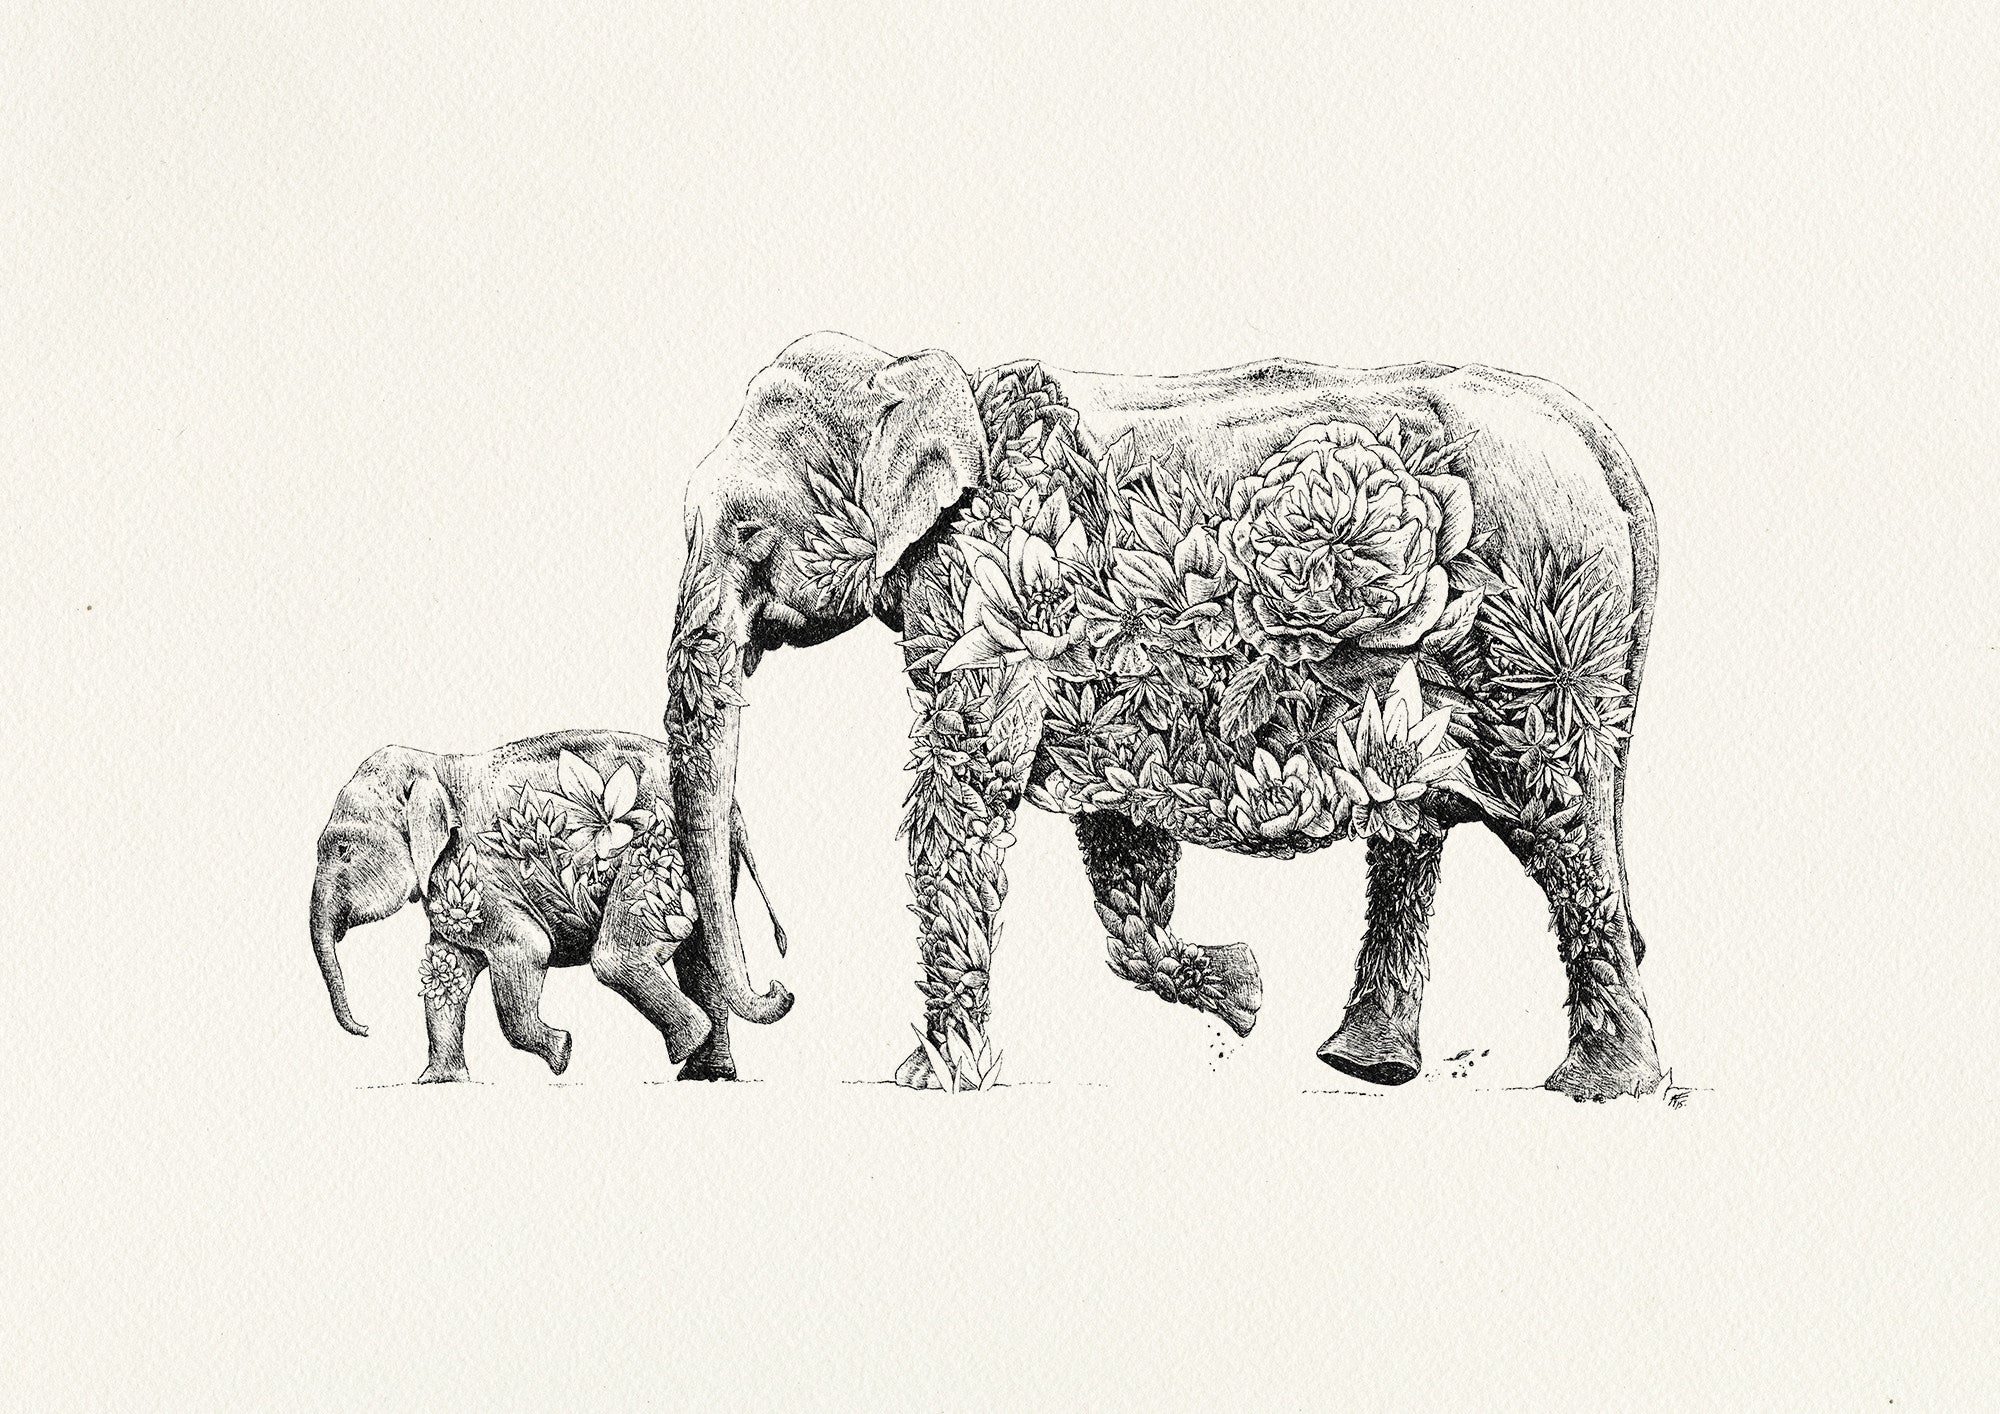 art for wildlife u2013 marini ferlazzo u2013 marini ferlazzo art for